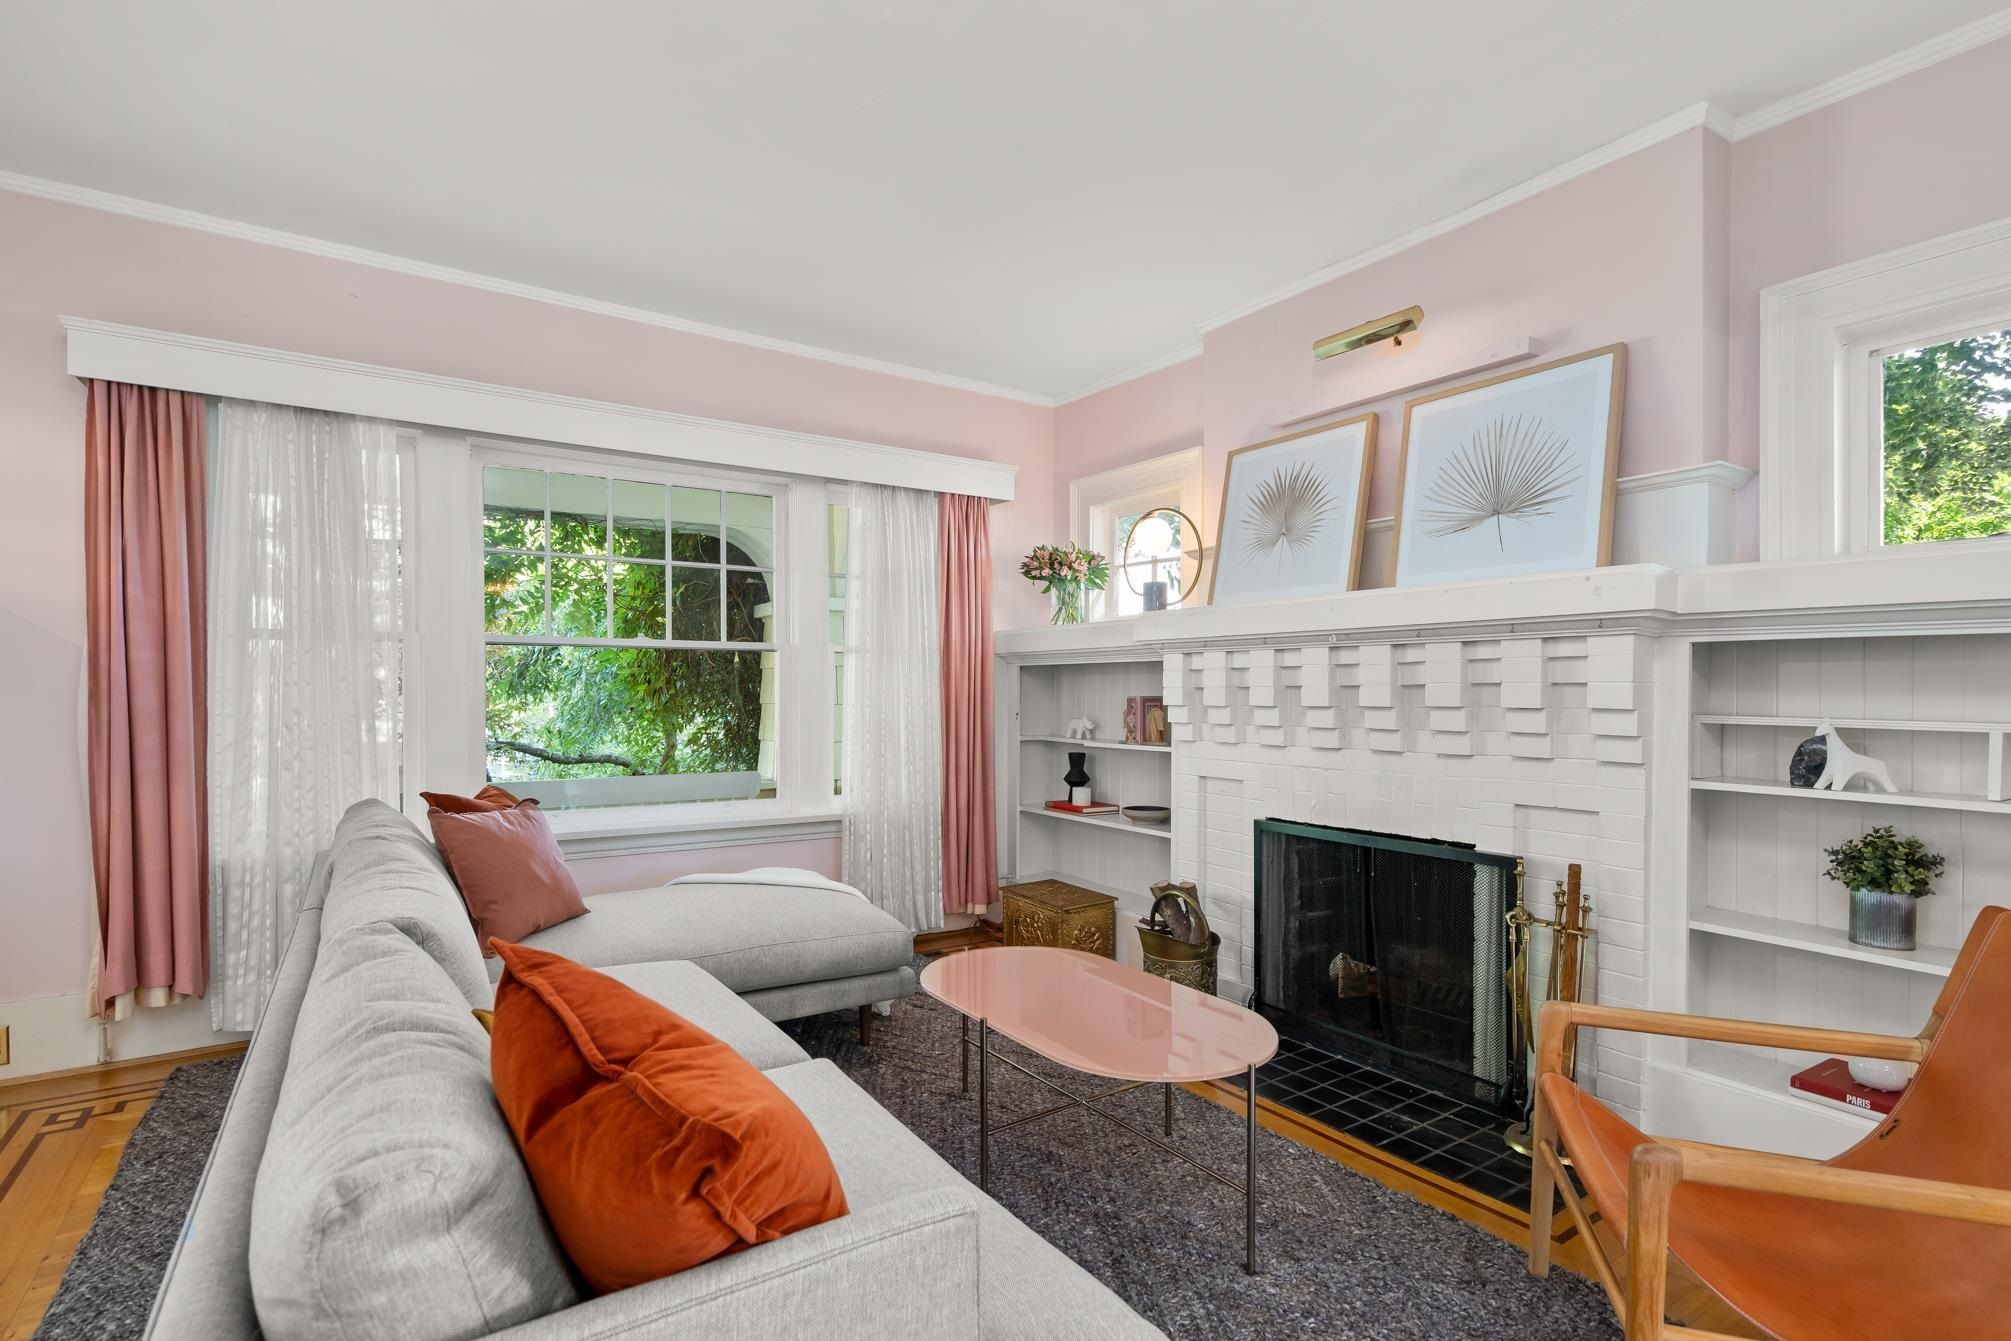 Main Photo: 2506 W 12TH Avenue in Vancouver: Kitsilano House for sale (Vancouver West)  : MLS®# R2614455